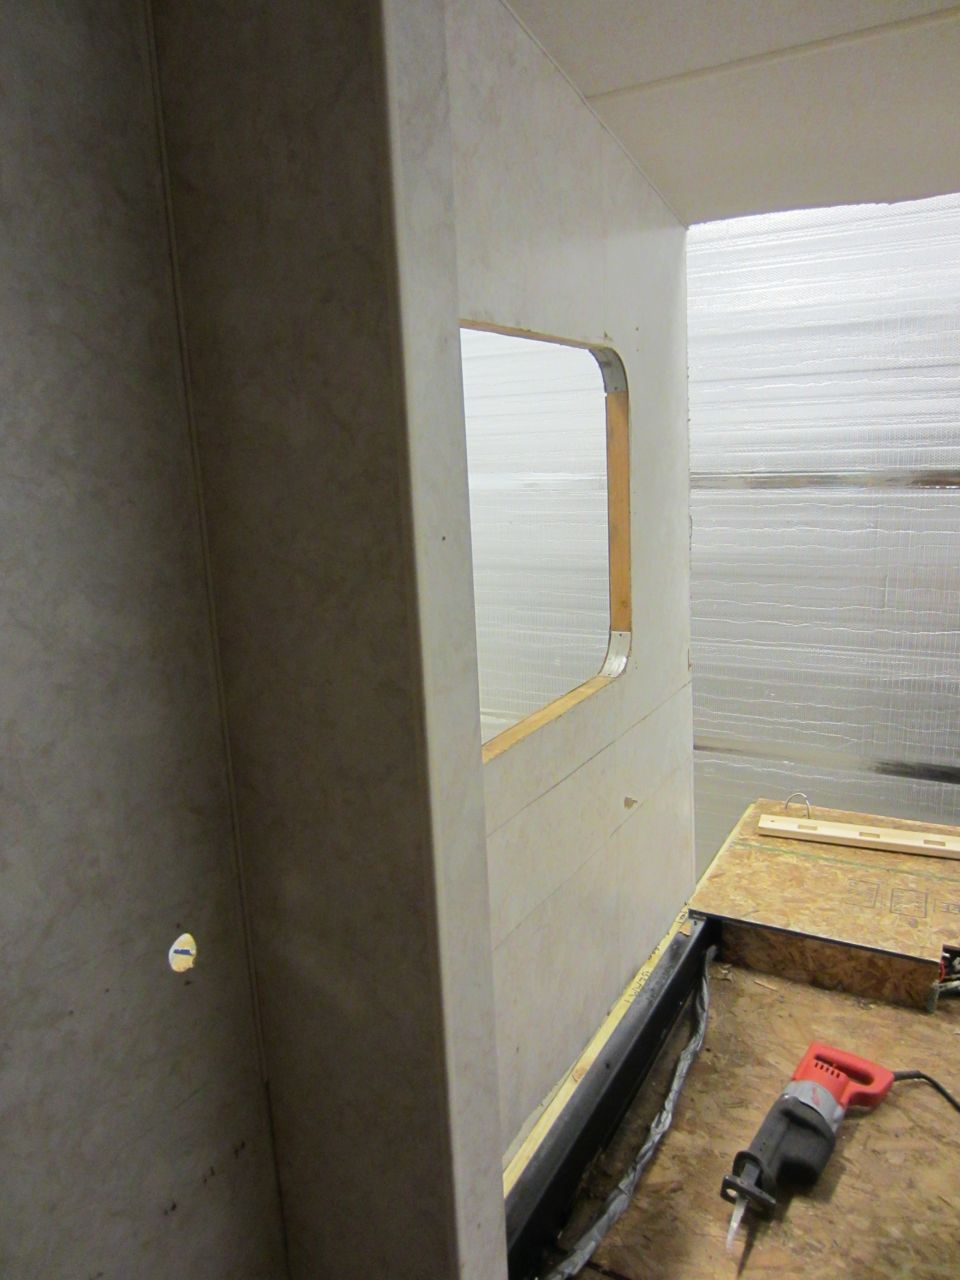 Divider wall between the bedroom and the bathroom sink on the driver side of the trailer.